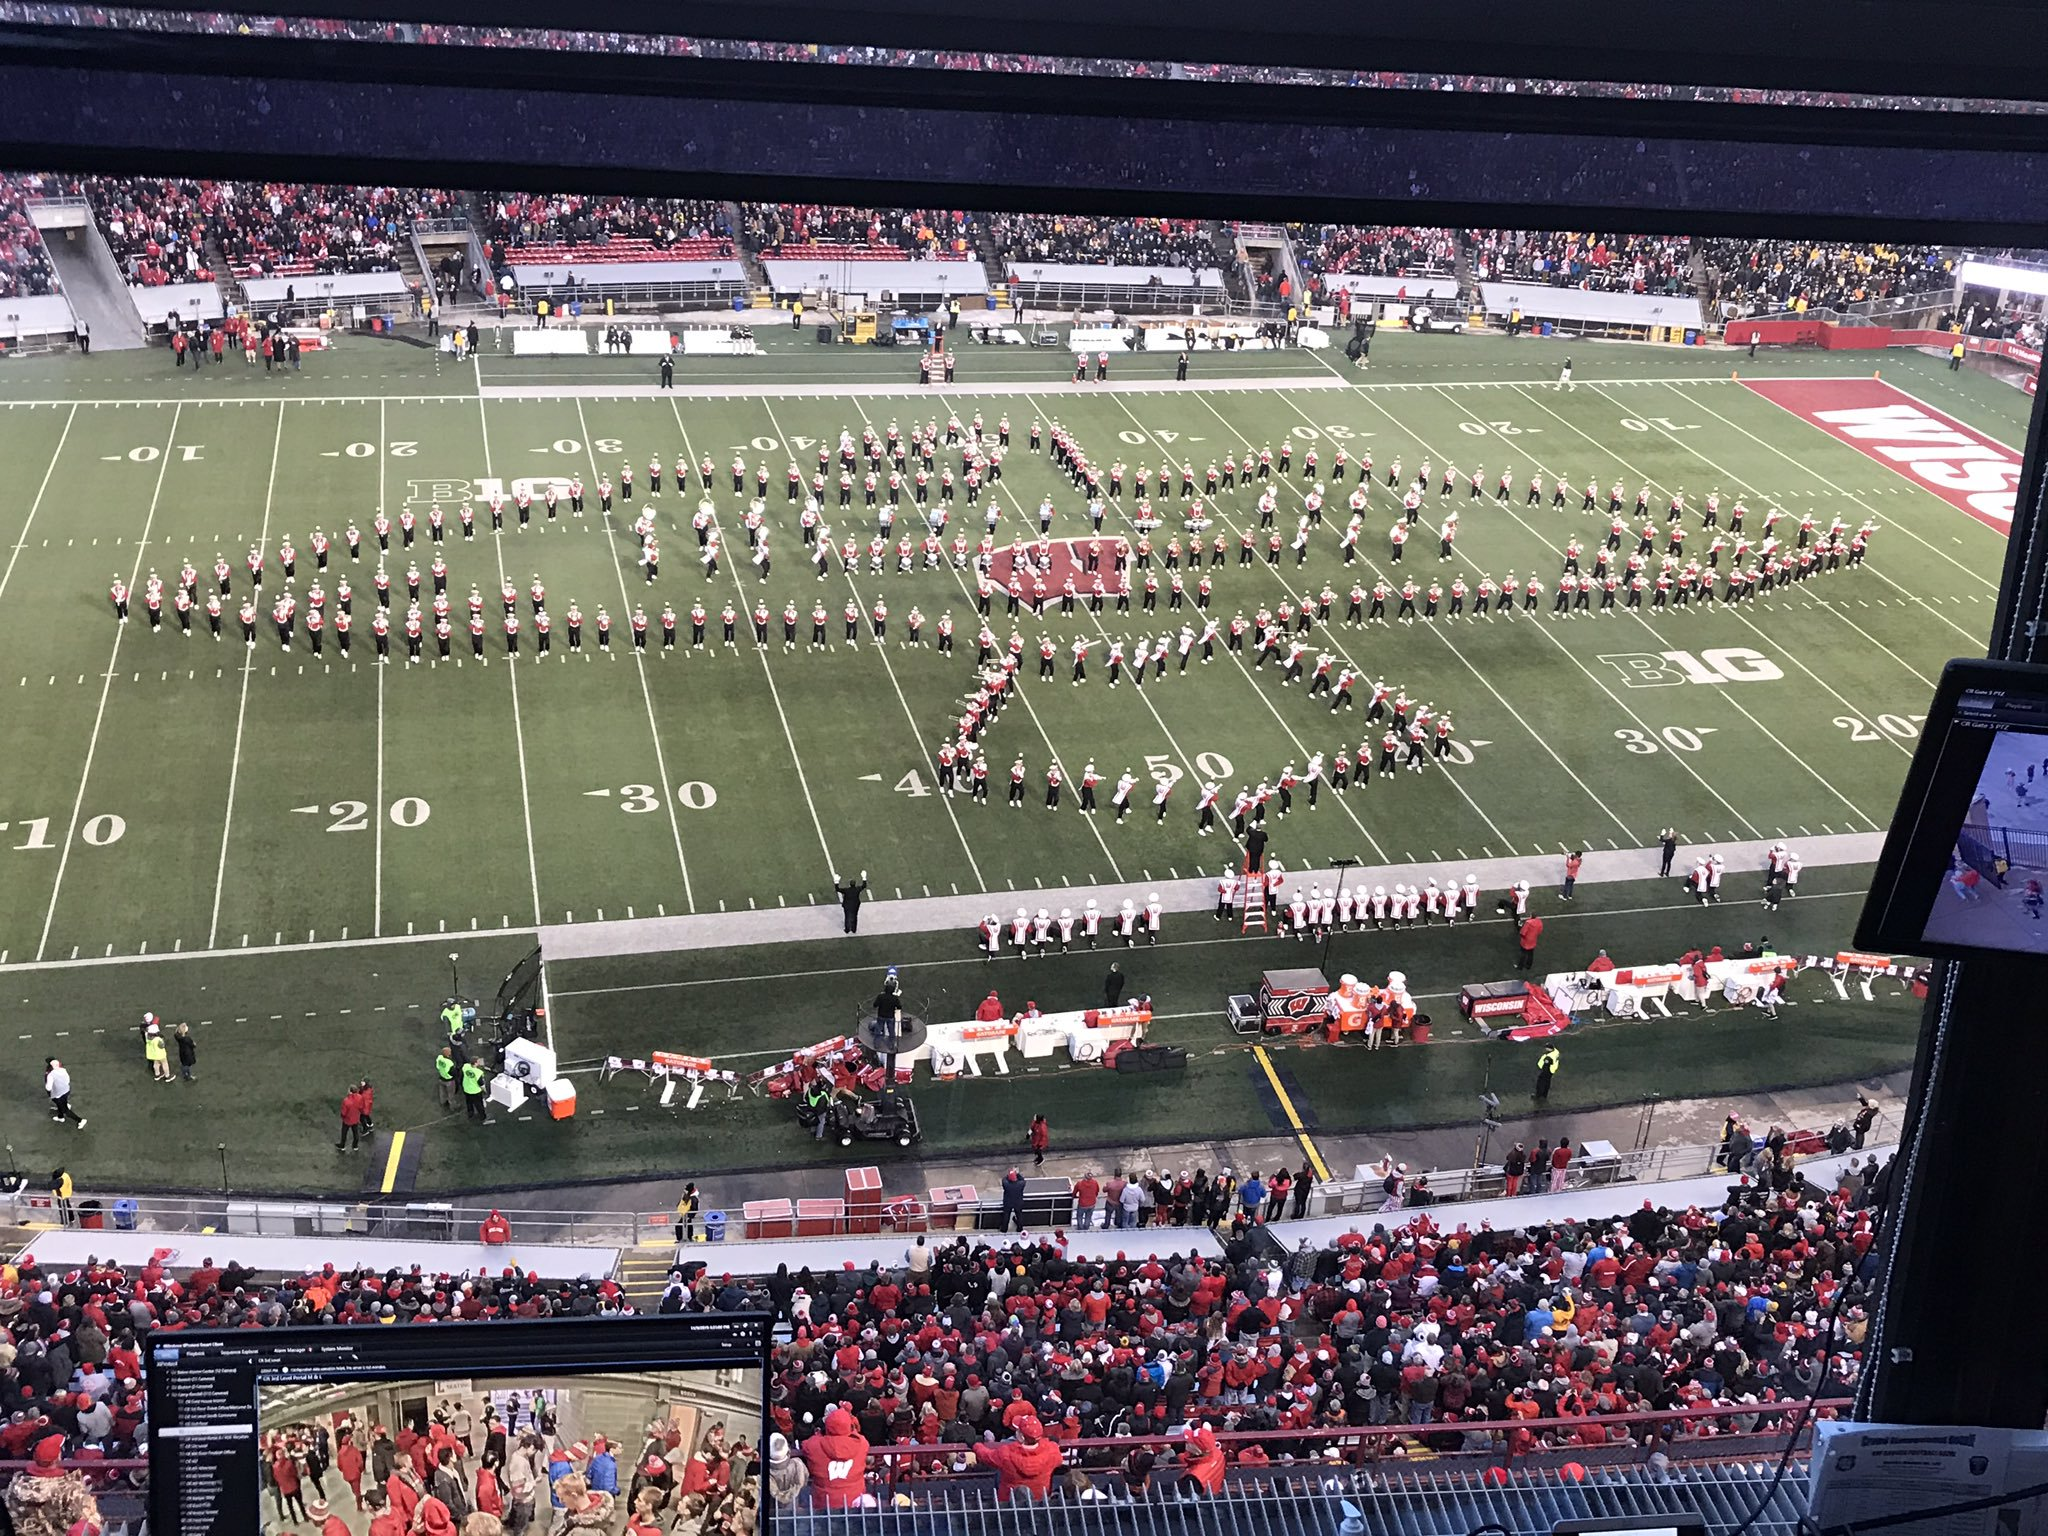 The University of Wisconsin Marching Band honors the U.S. Marine Corps during its halftime show Nov. 9, 2019. (Photo courtesy Ryan Wubben)